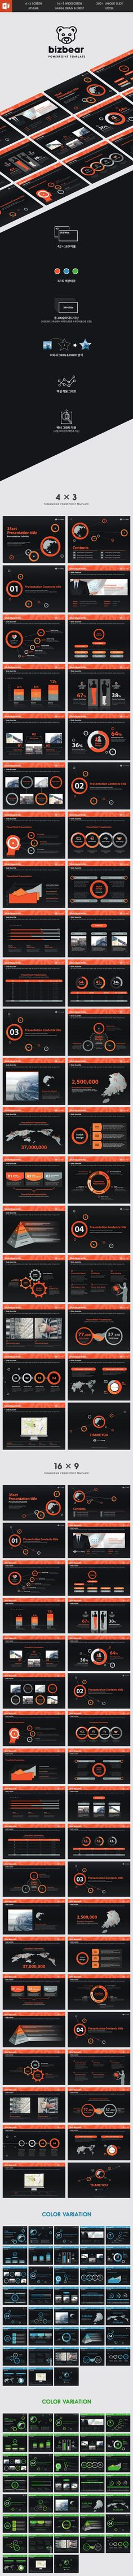 powerpoint template, ppt template, free powerpoint template, 테마몽 파워포인트템플릿, 무료파워포인트템플릿,키노트디자인,프리미엄파워포인트템플릿,테마몽,thememon